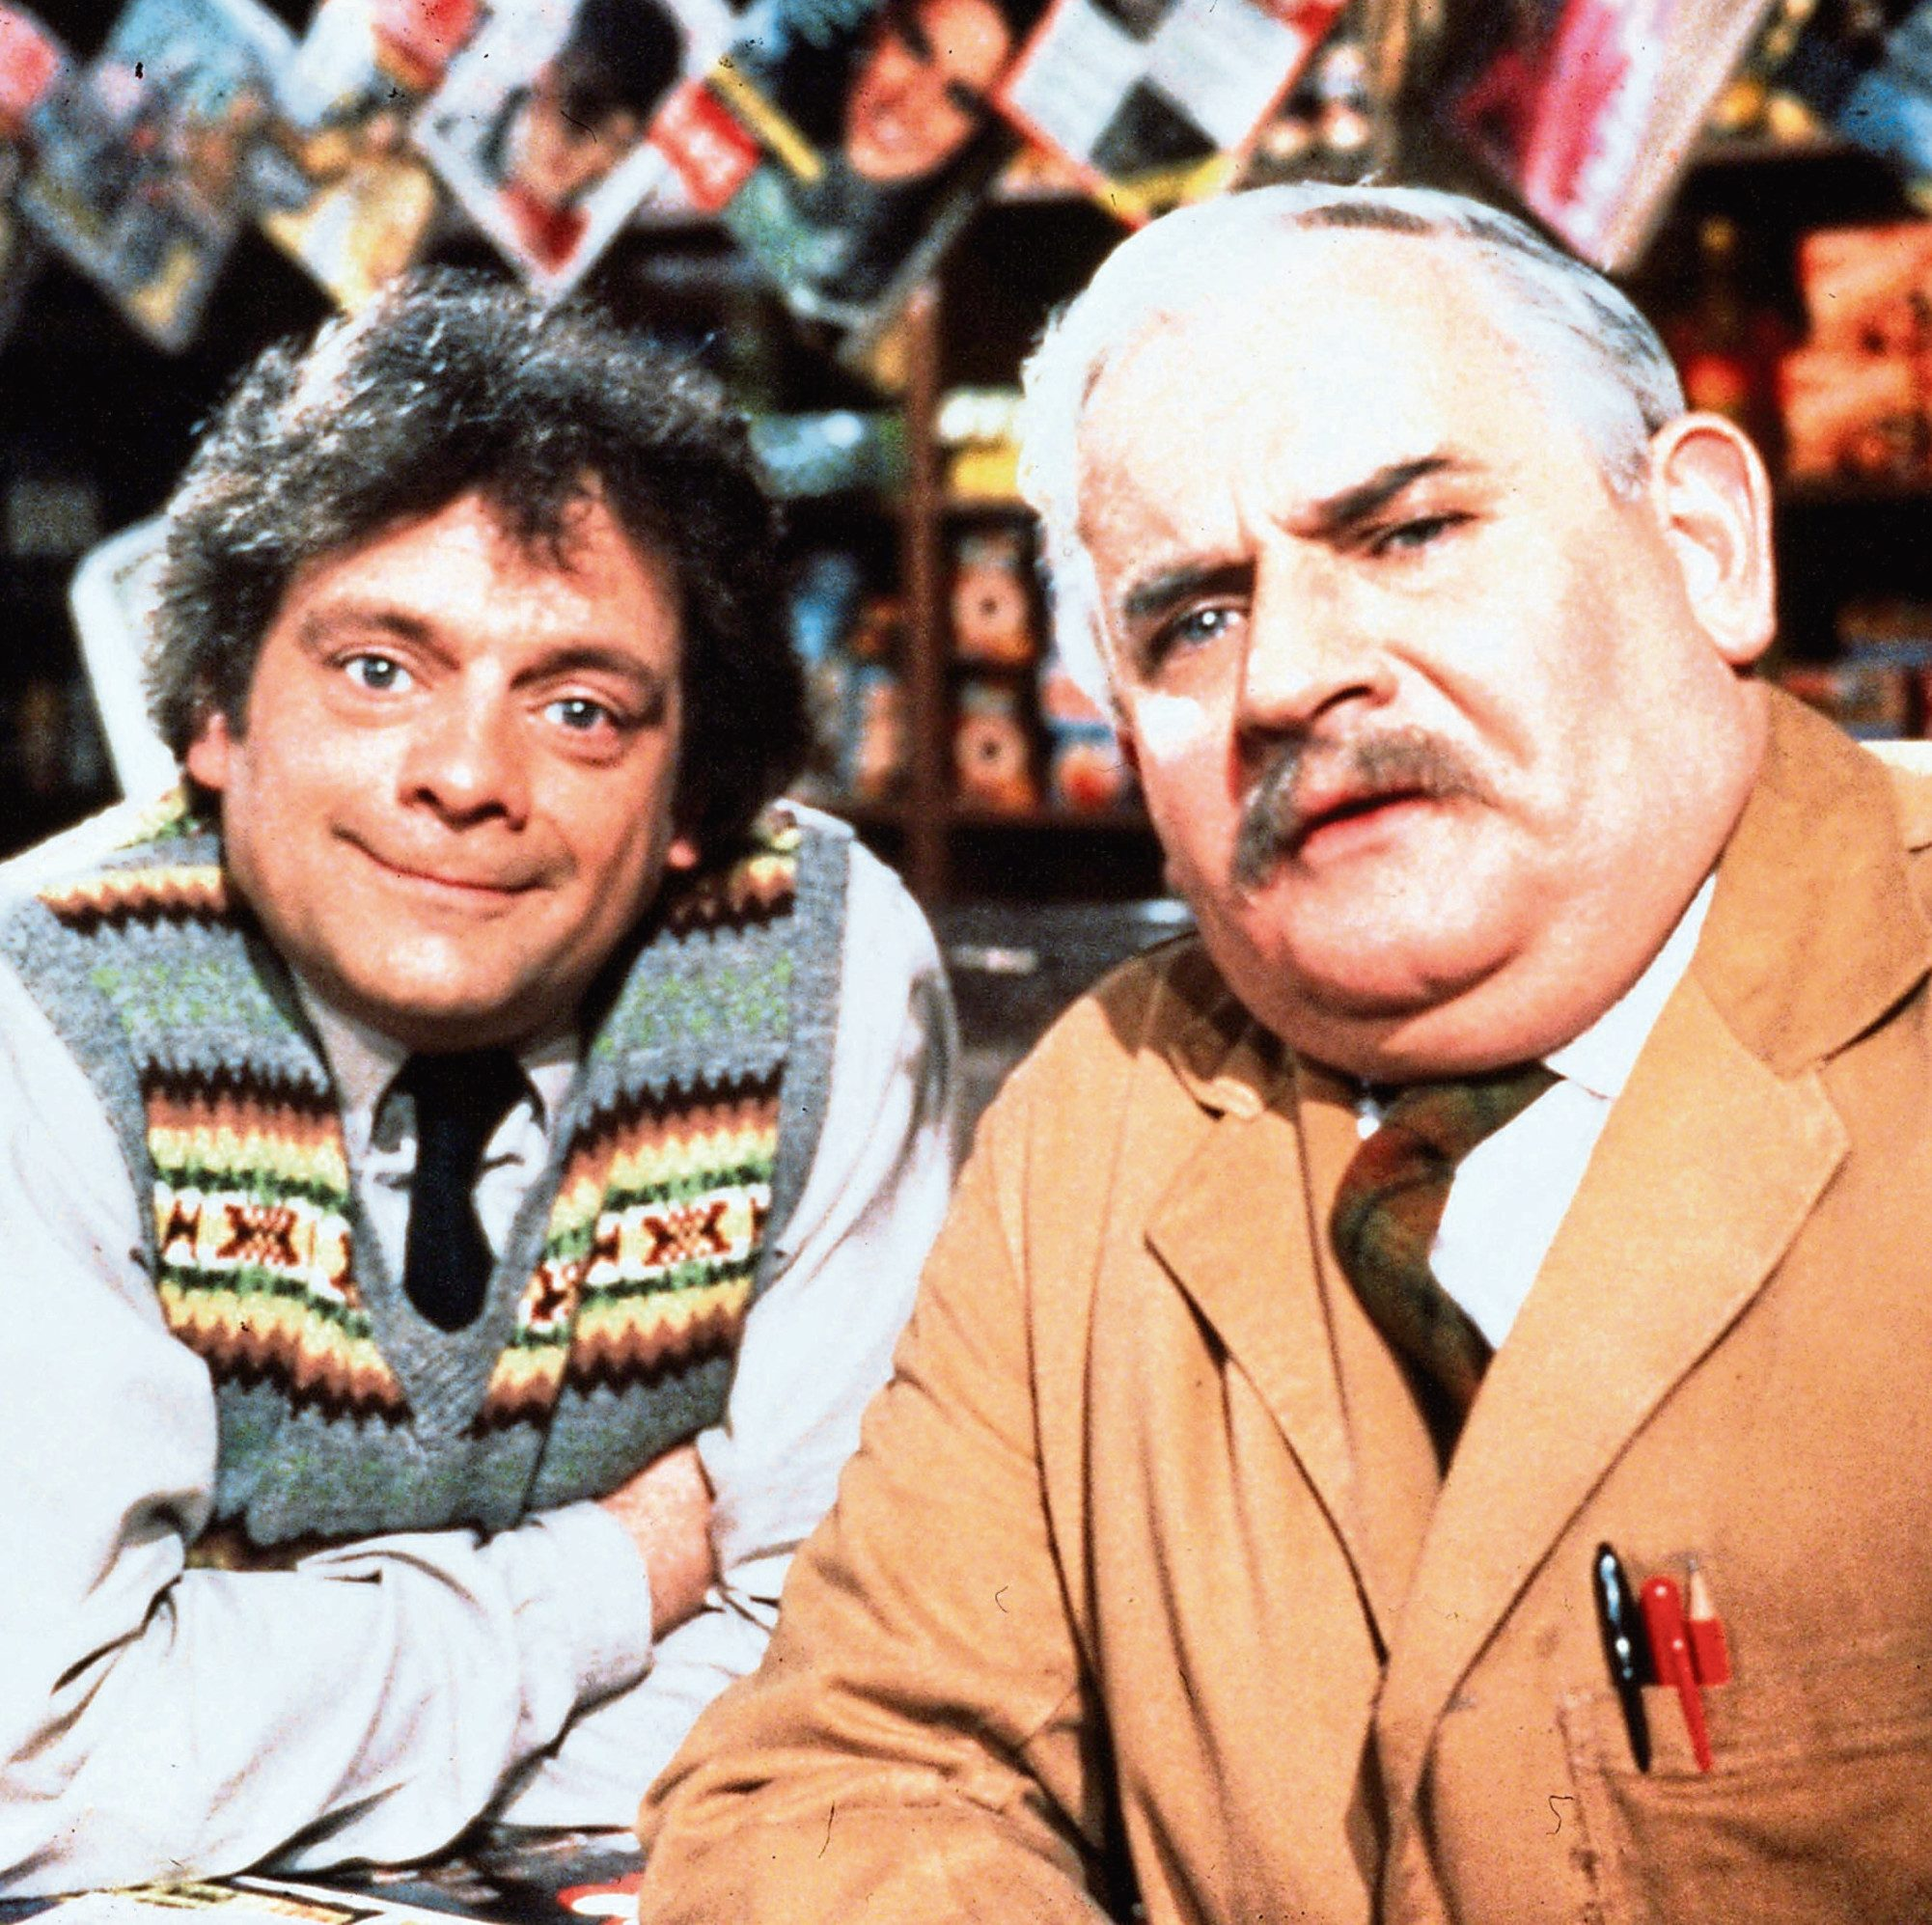 Sir David Jason in Open All Hours with Ronnie Barker as Arkwright